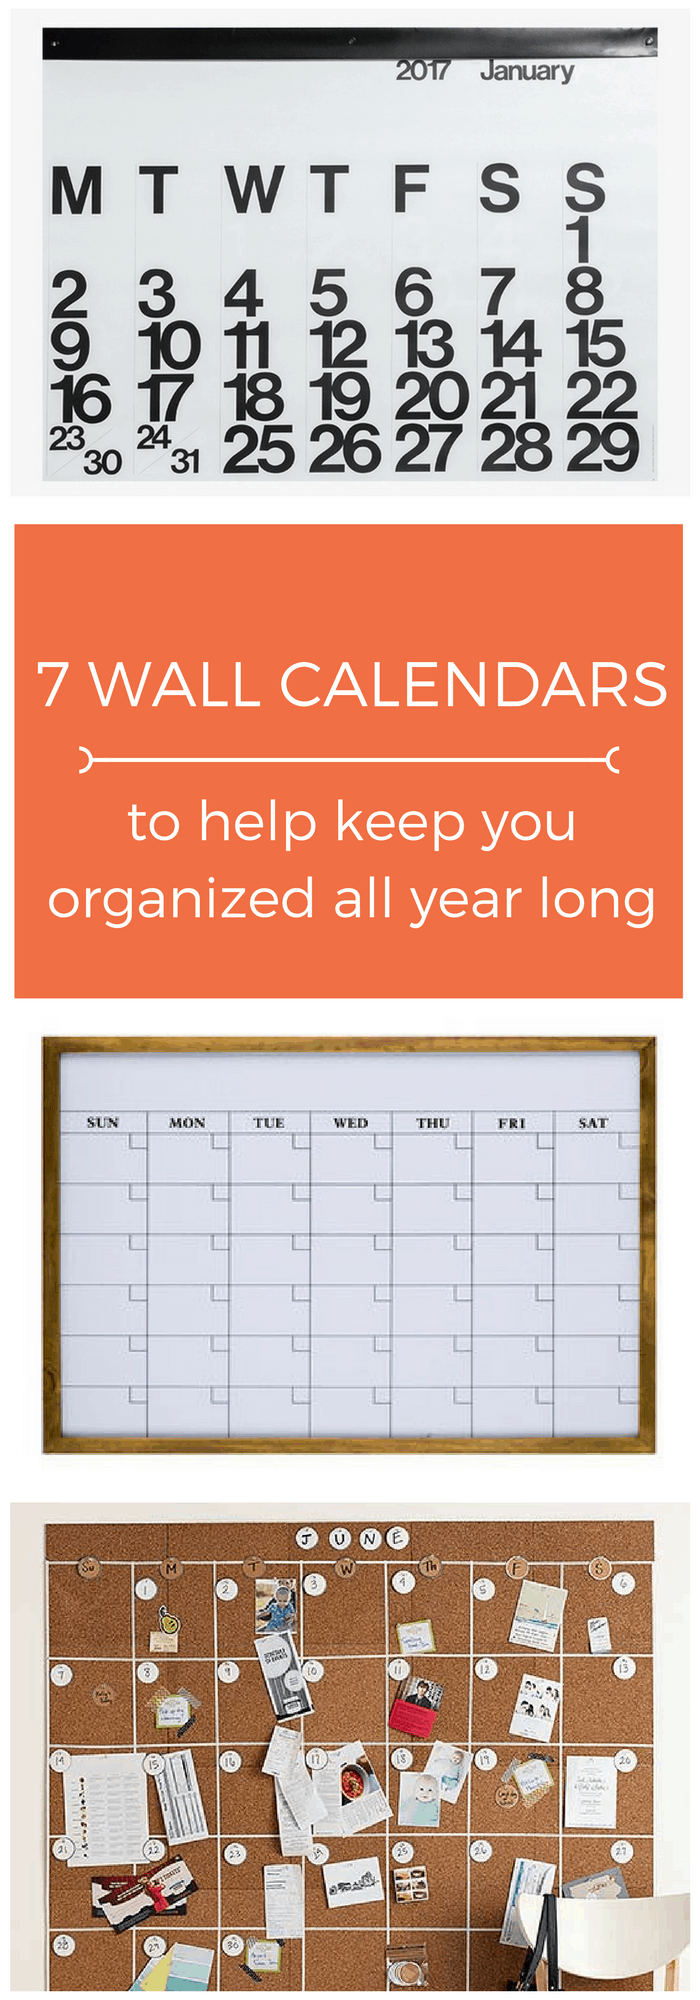 Year Long Calendar : Wall calendars to help keep you organized all year long